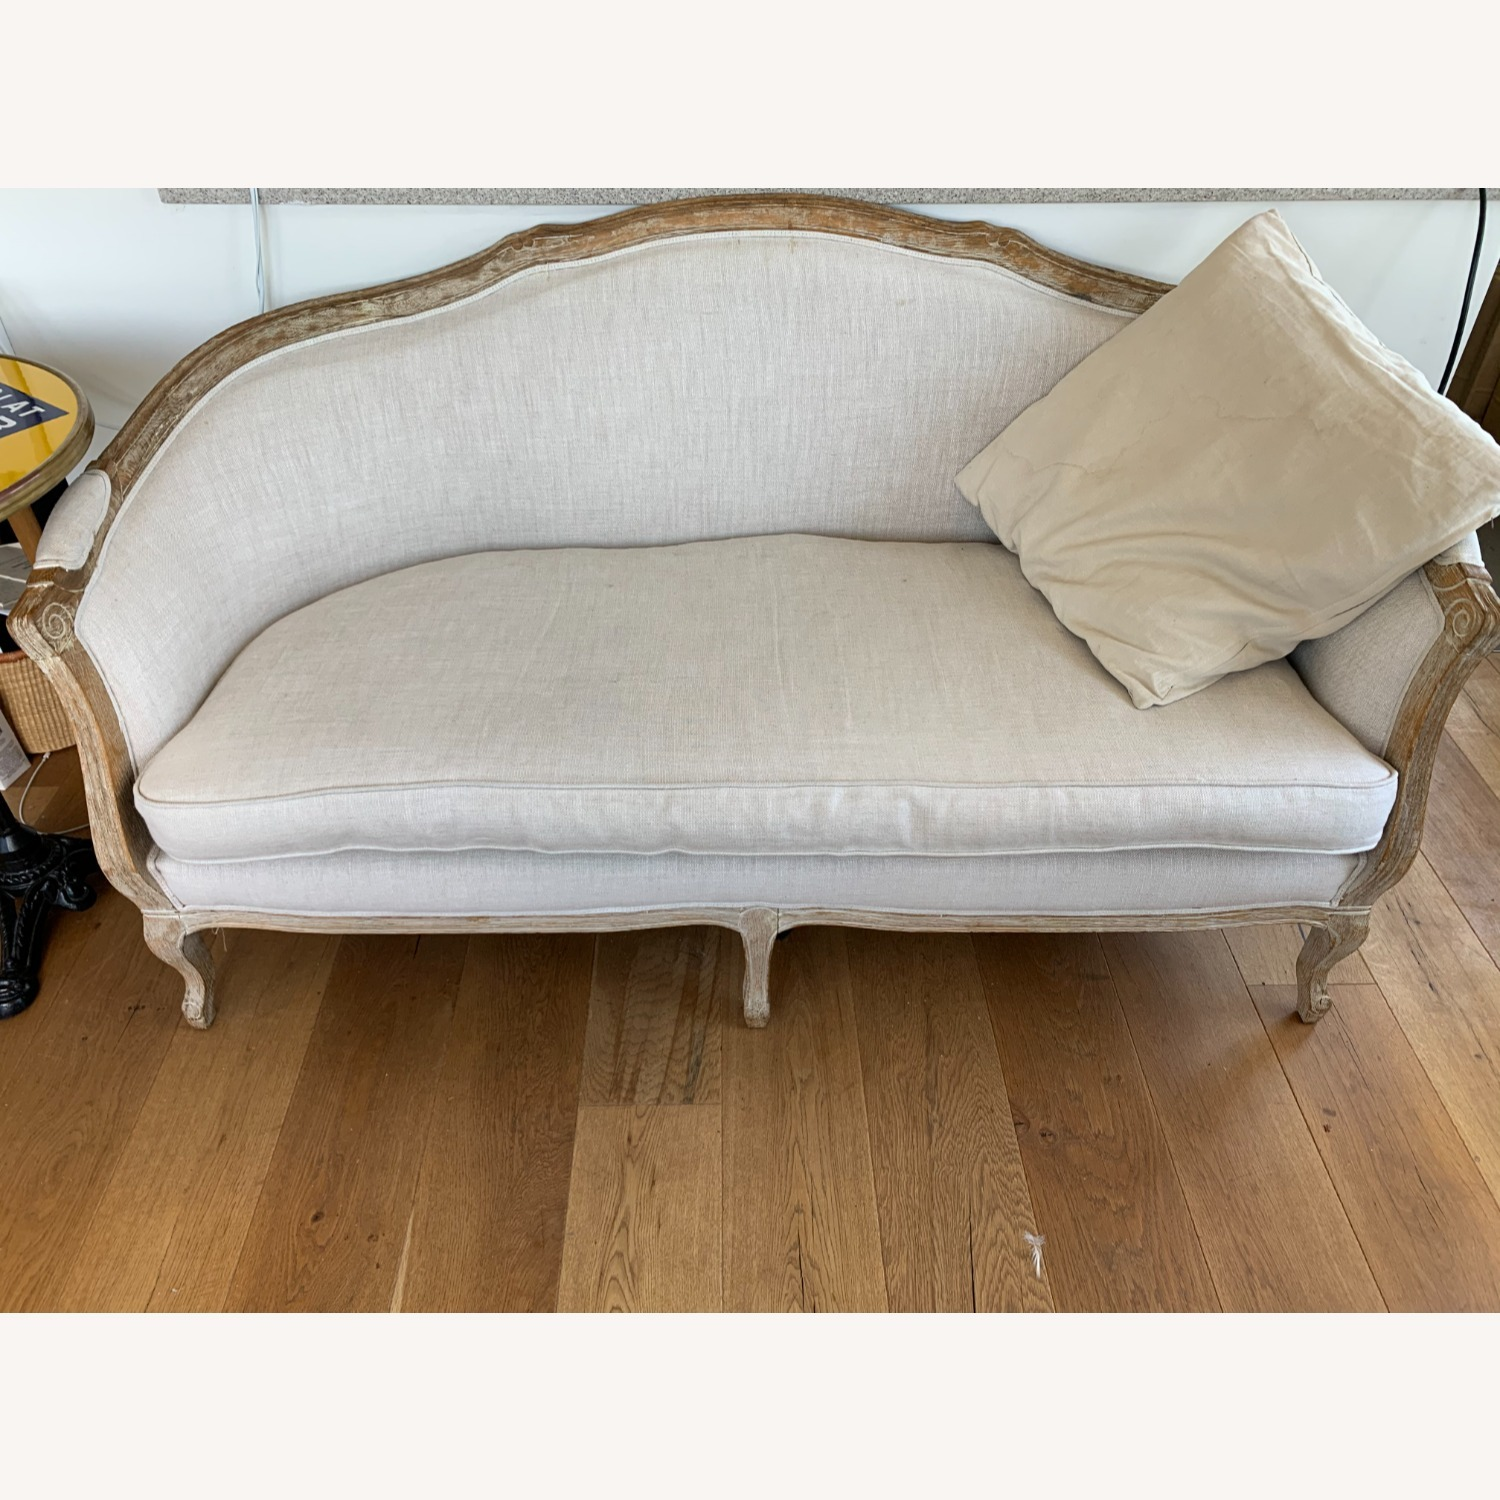 Restoration Hardware Vintage 2 Seater Sofa - image-0